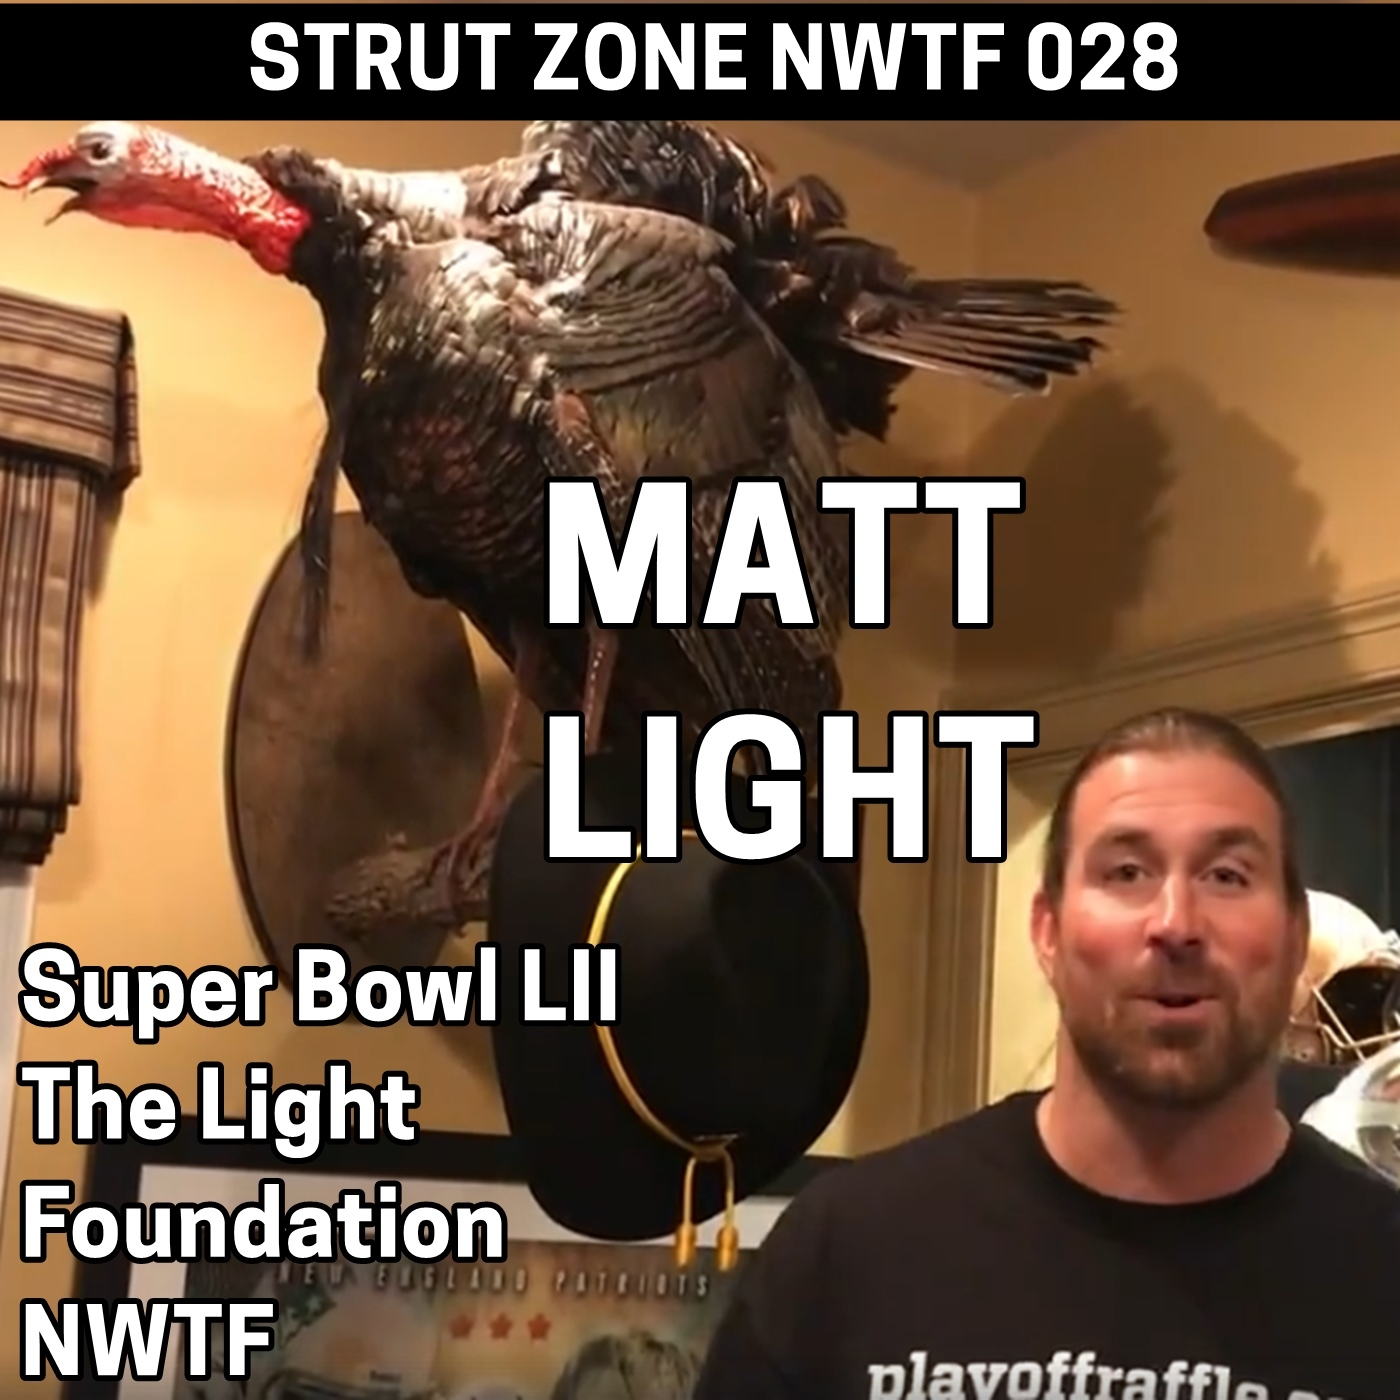 The Strut Zone NWTF All Access: 028 Matt Light   Super Bowl LII, The Light  Foundation, And The NWTF